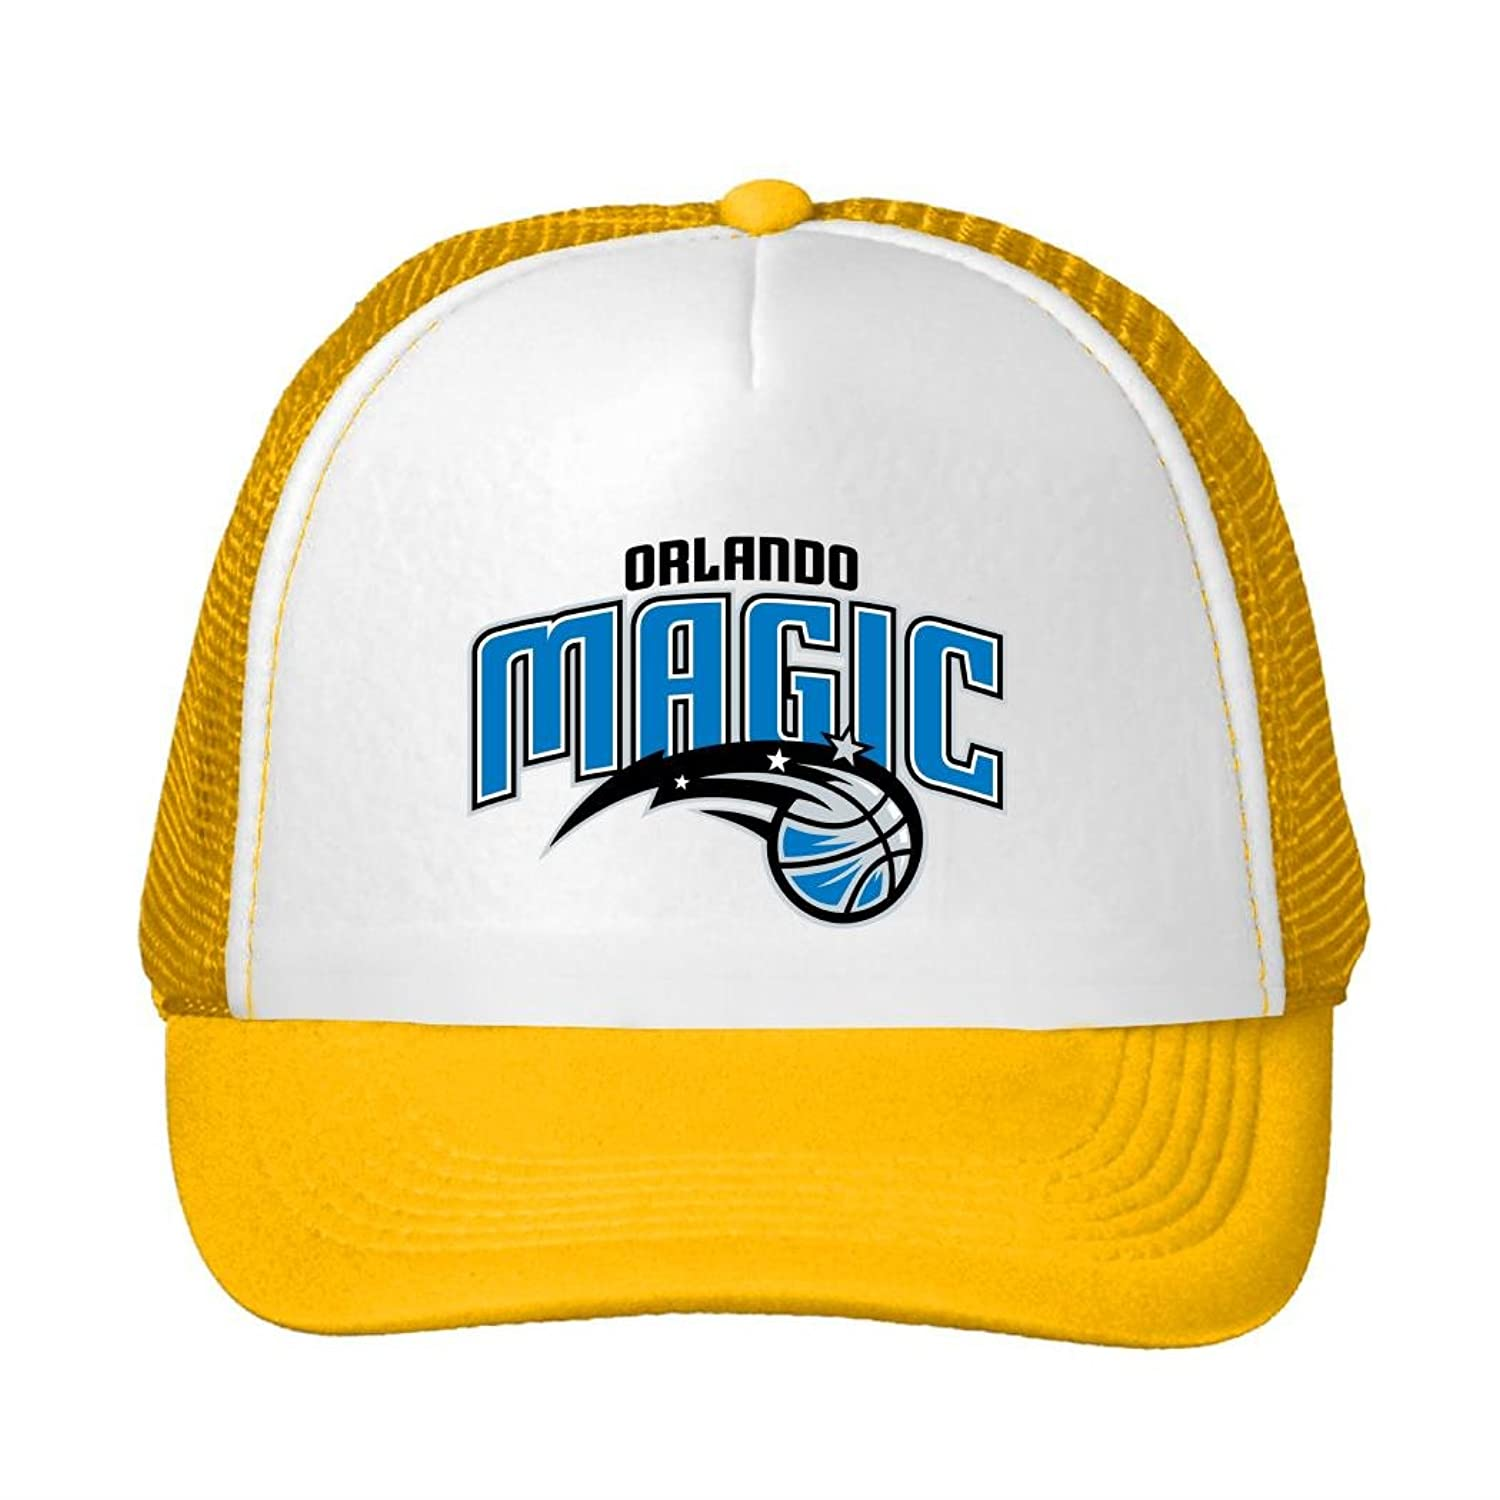 Orlando Magic Team Logo Opeeda Adjustable Trucker Hat Snapback Caps For Men/Women